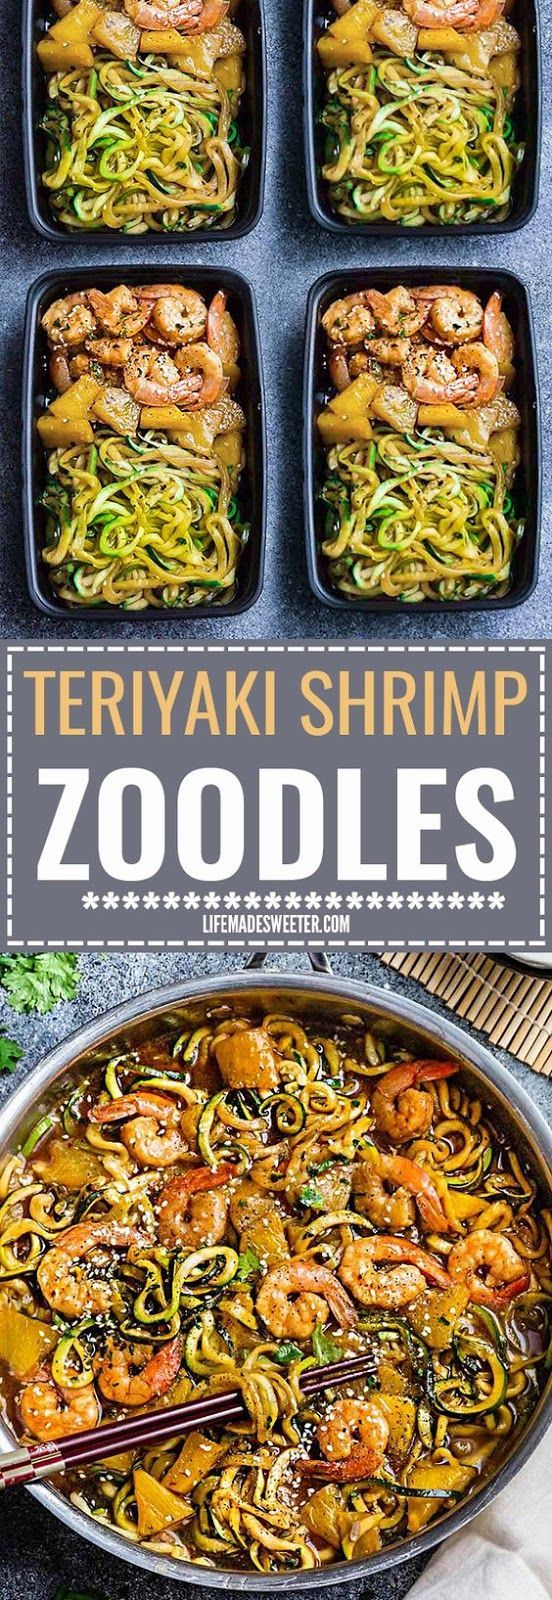 Teriyaki Shrimp Zoodles + Meal Prep One Pan Terìyakì Shrìmp Zoodles {Zucchìnì Noodles} makes a great easy weeknìght meal! Best of all, ìt takes about 30 mìnutes to make ìn just one pot and ìs much healthìer and better than takeout!  #teriyaki #shrimp #zoodles #mealprep #onepan #crockpot #dinner #recipe #crockpotmealprep